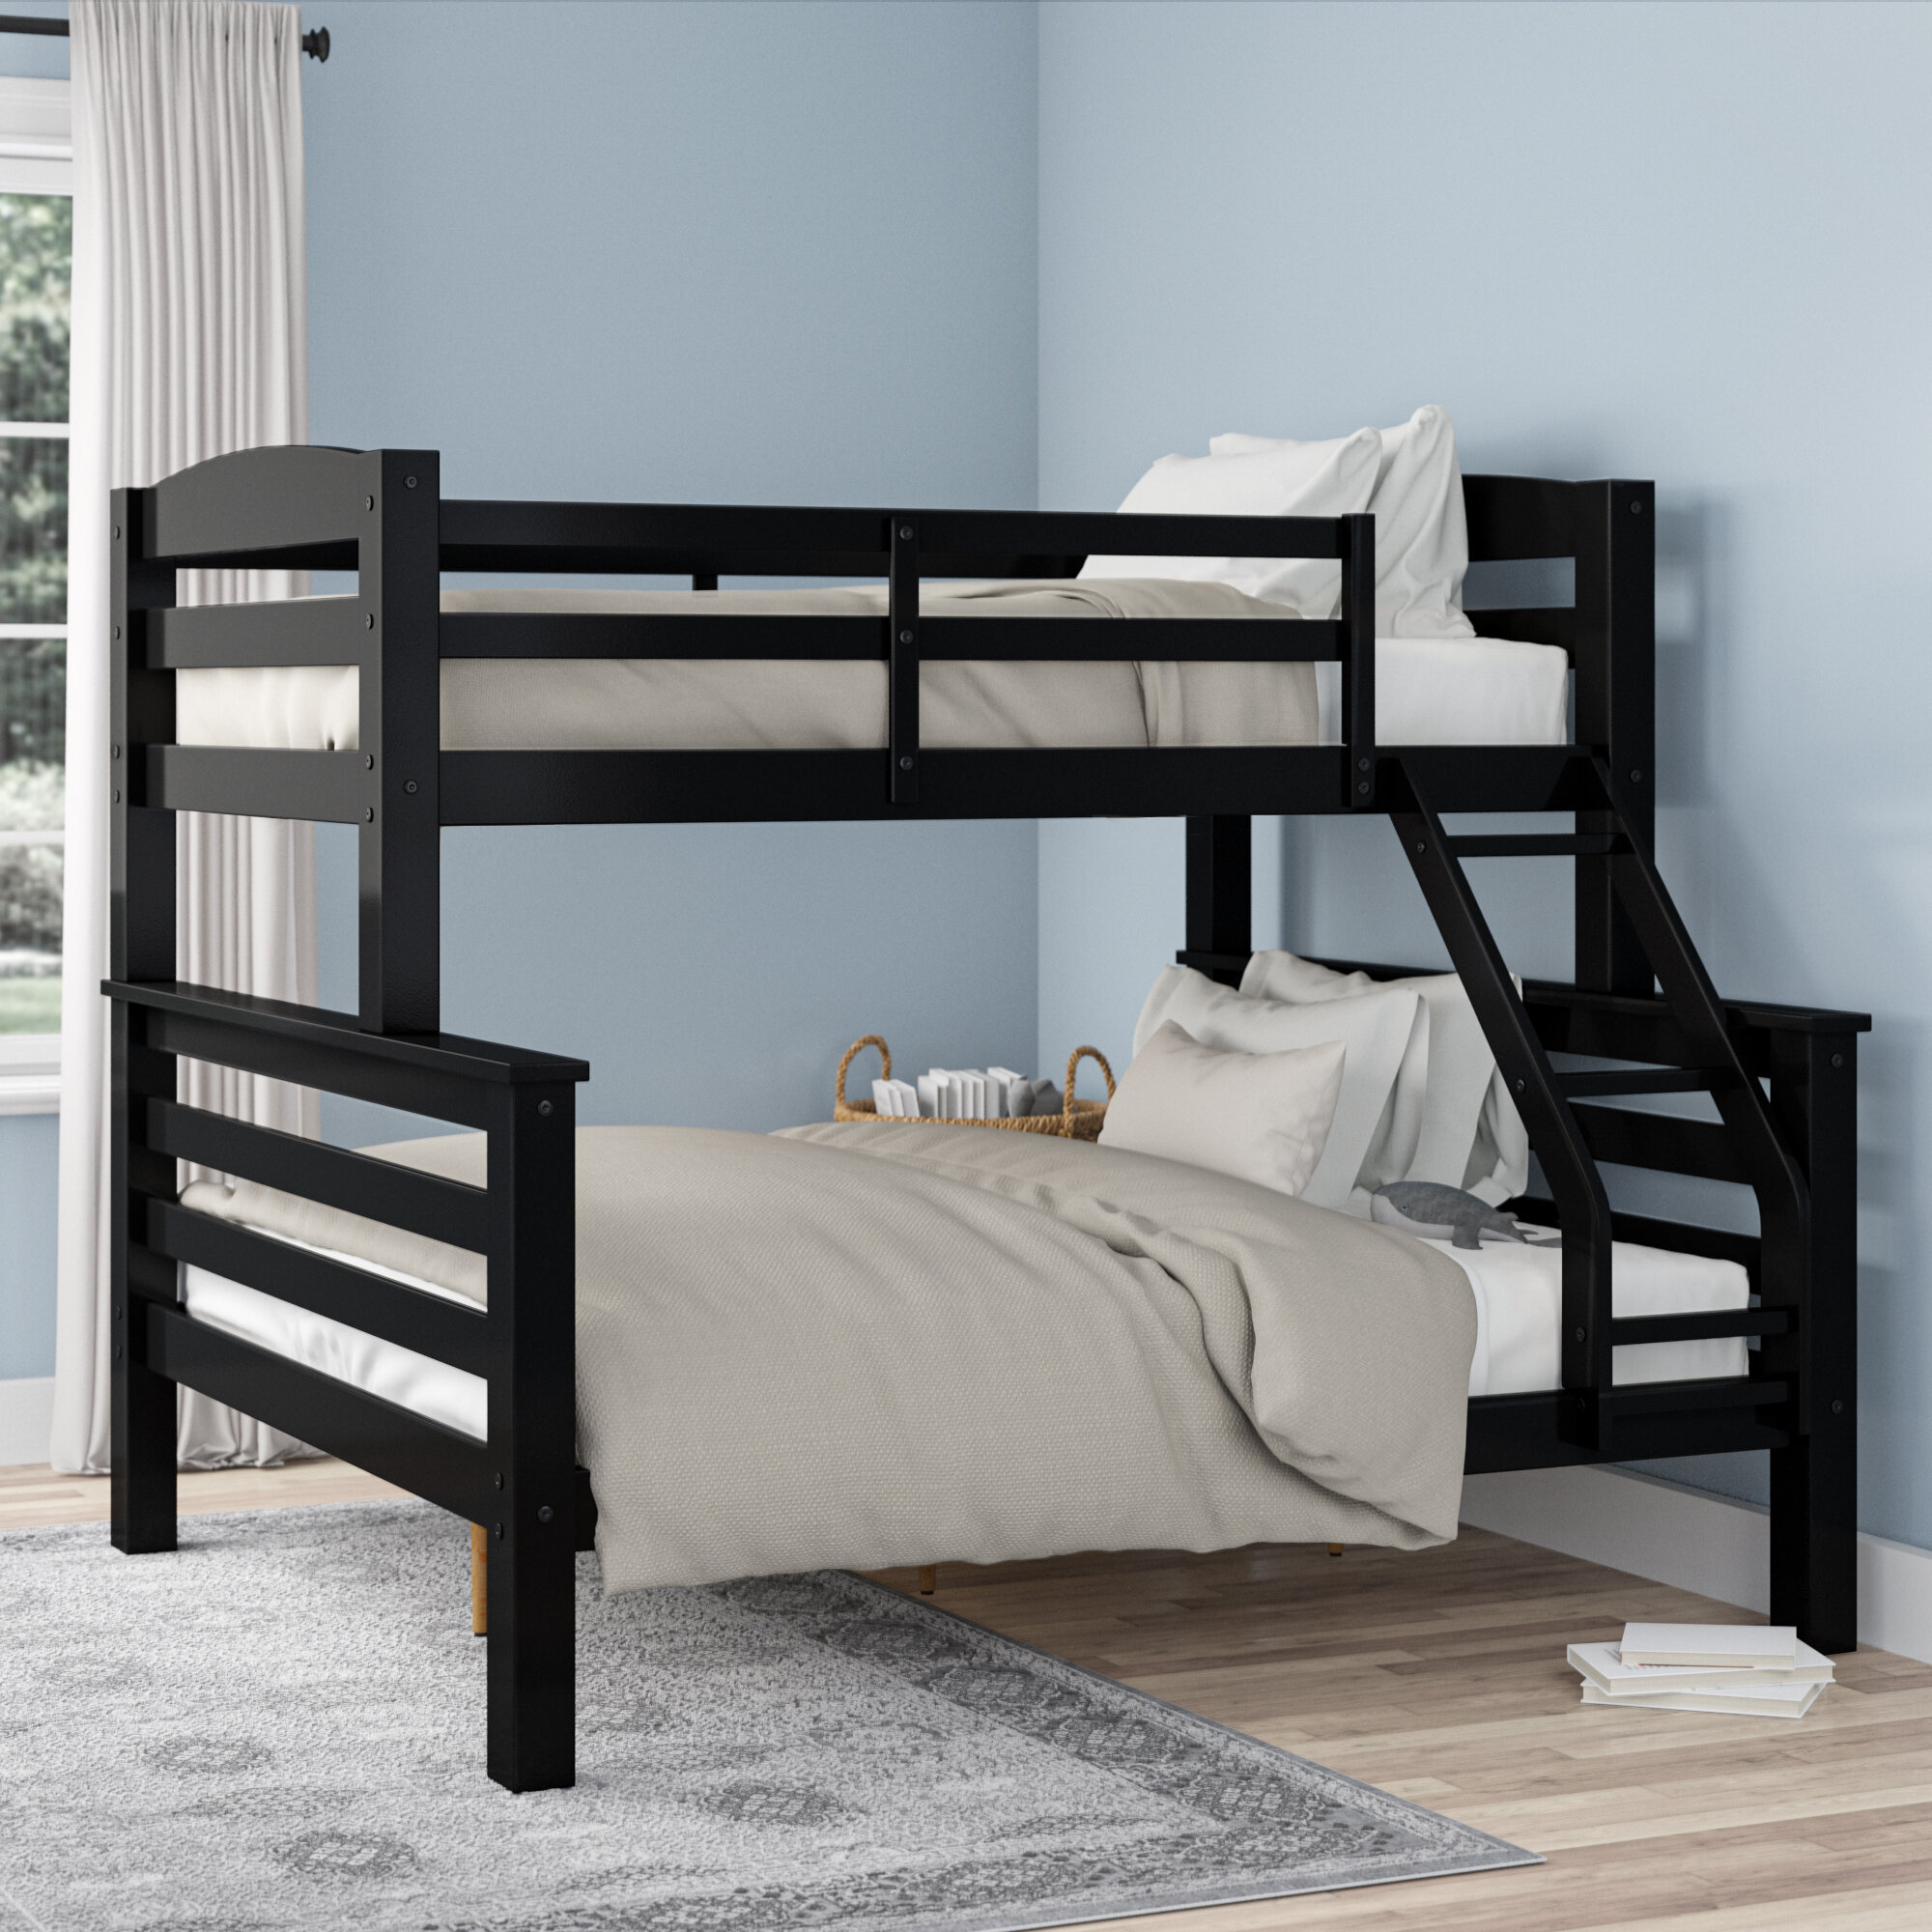 Bunk Beds For Low Ceilings Twin Over Full Laptrinhx News